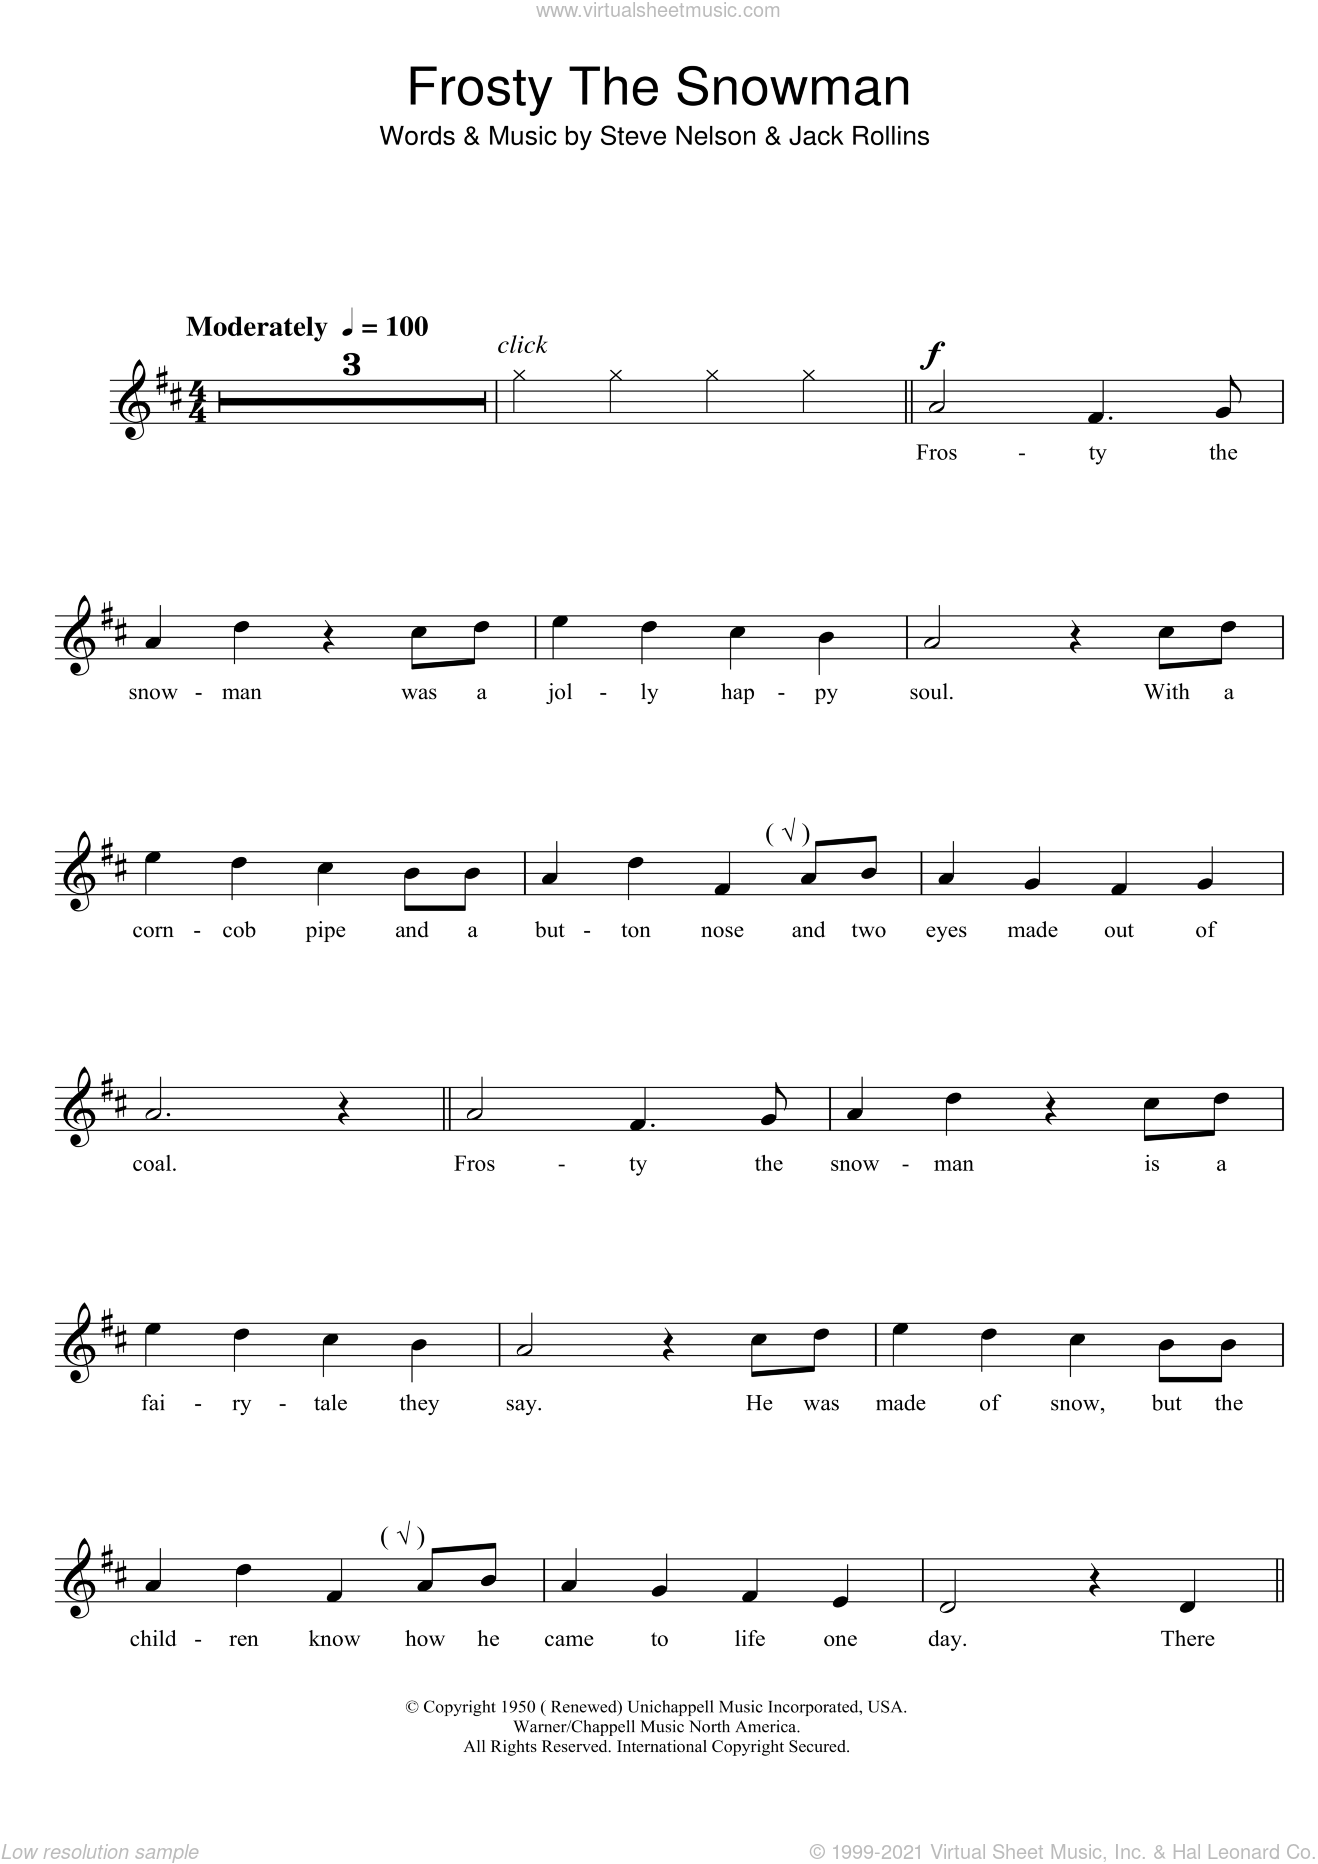 image relating to Frosty the Snowman Sheet Music Free Printable known as Ronettes - Frosty The Snowman sheet new music for clarinet solo [PDF]